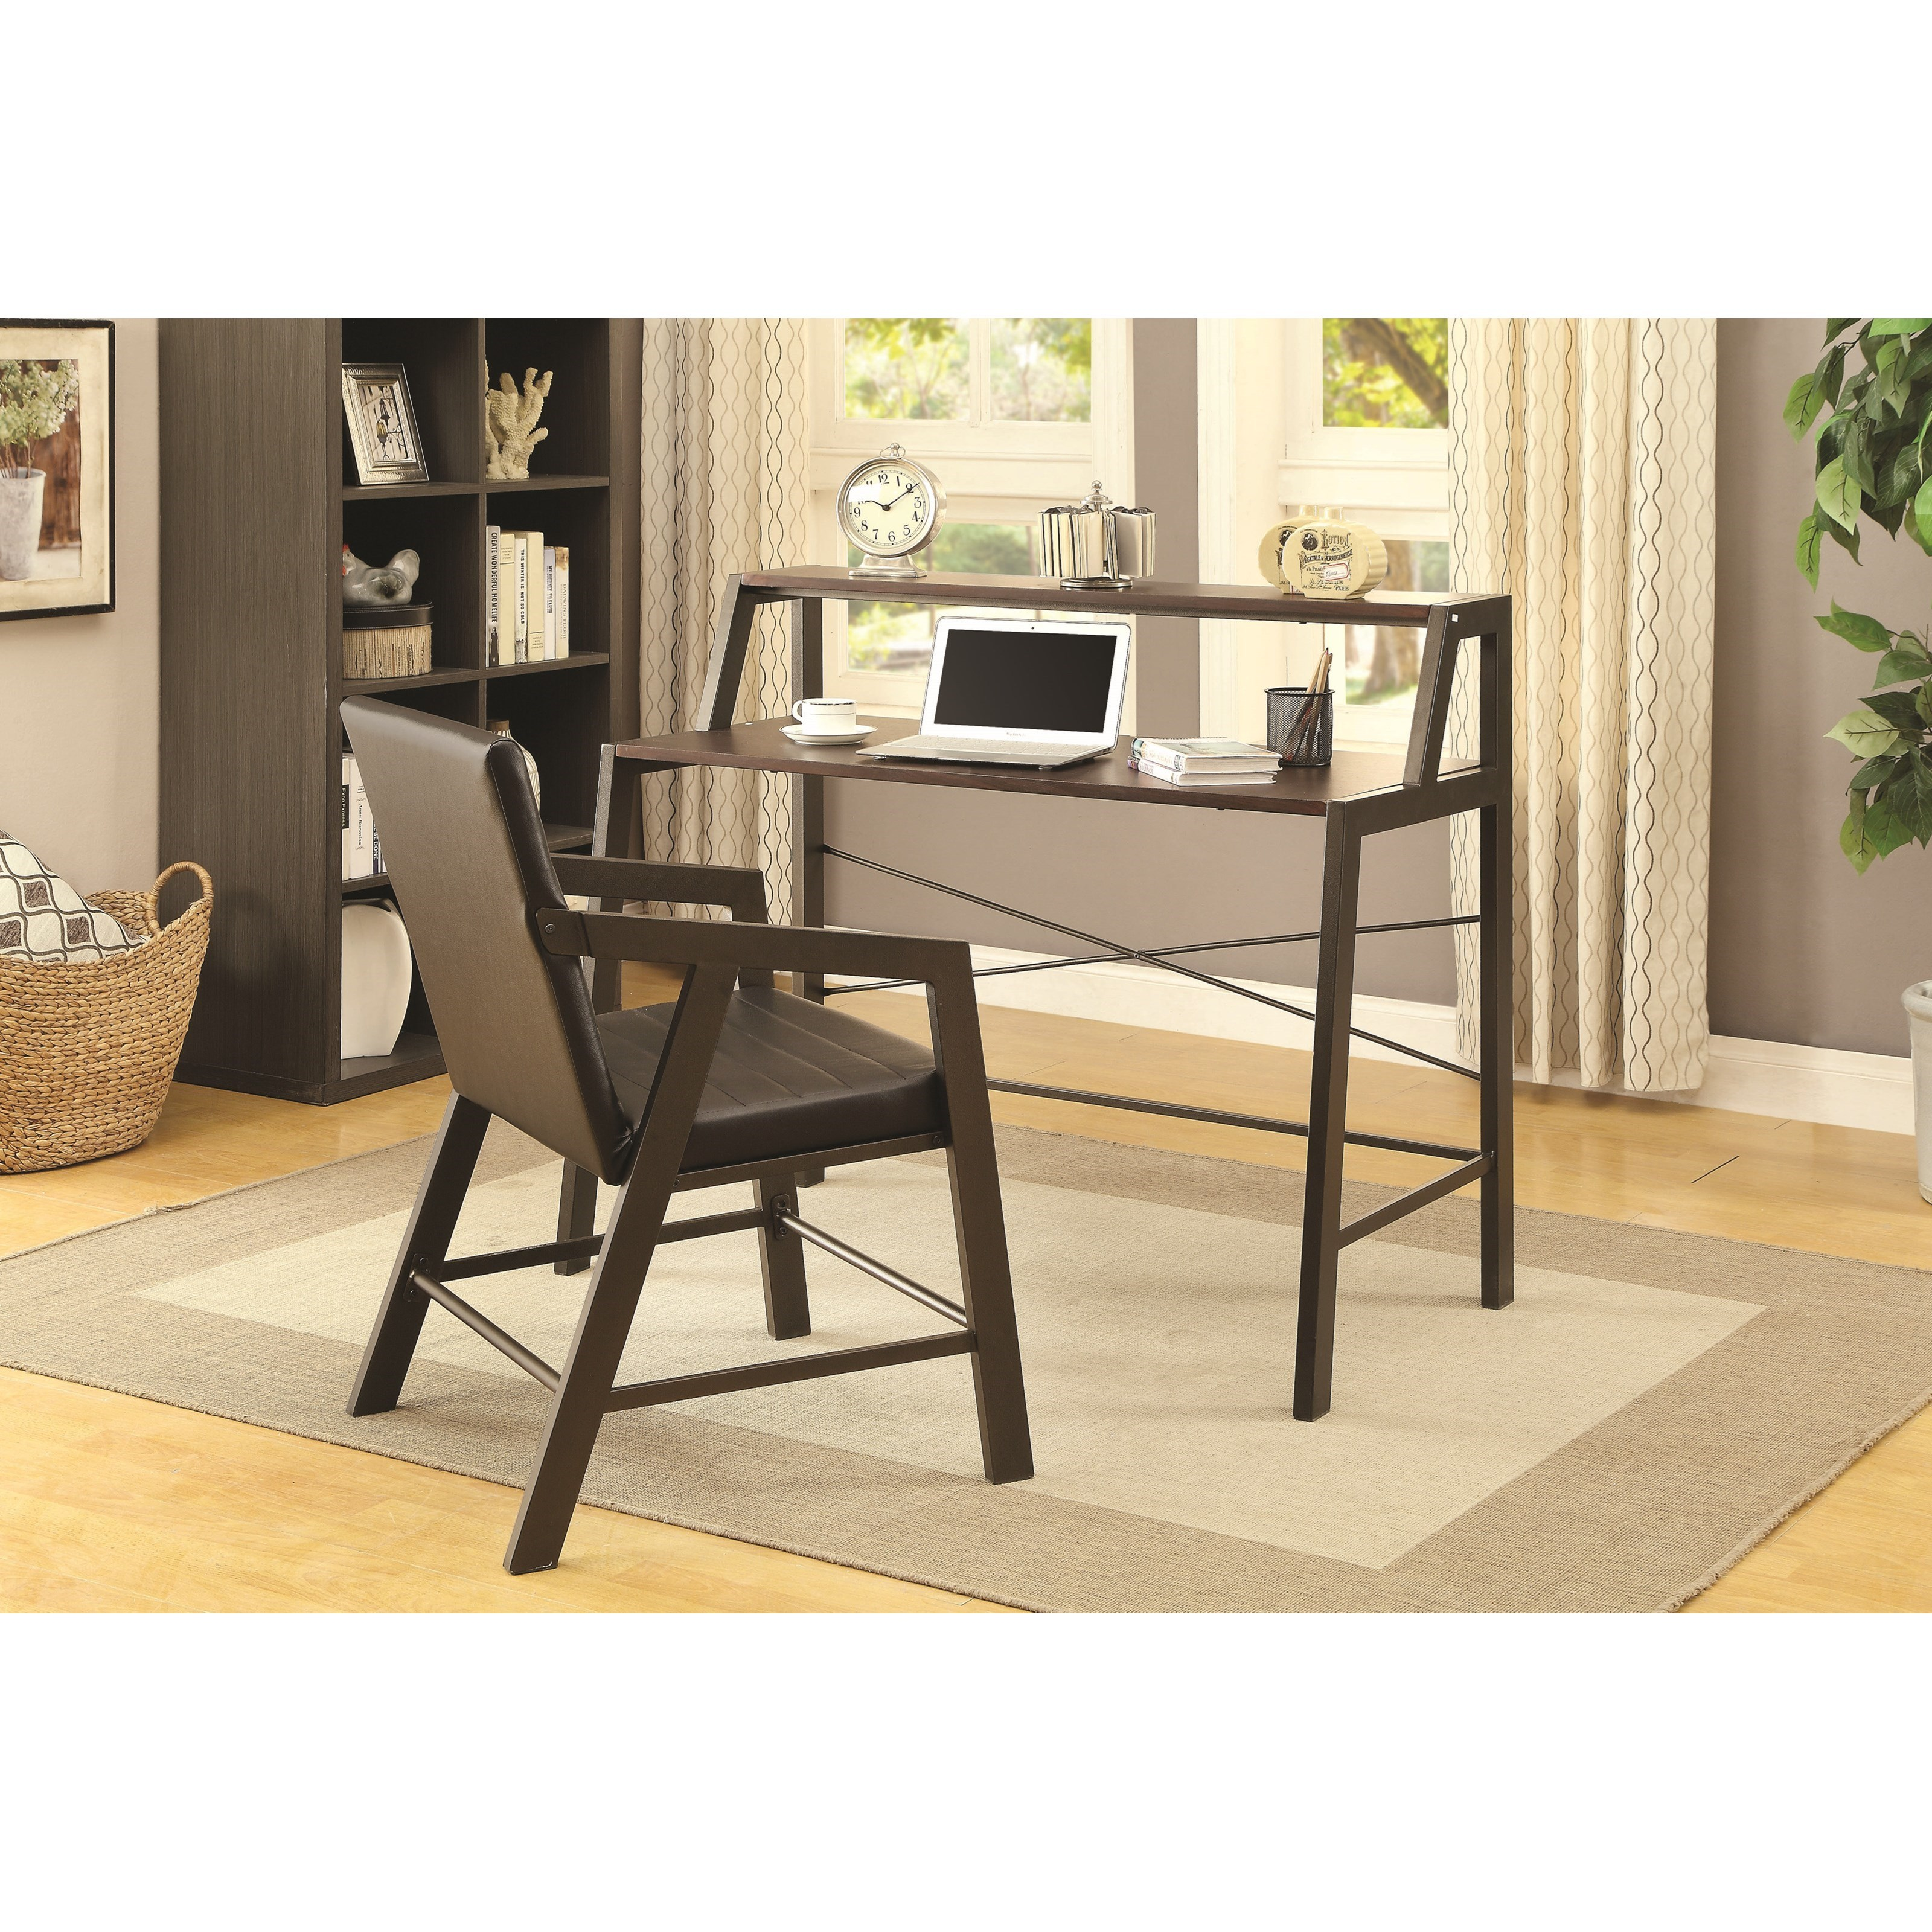 Coaster   Office Desk and Chair Set - Item Number: 801560+801561